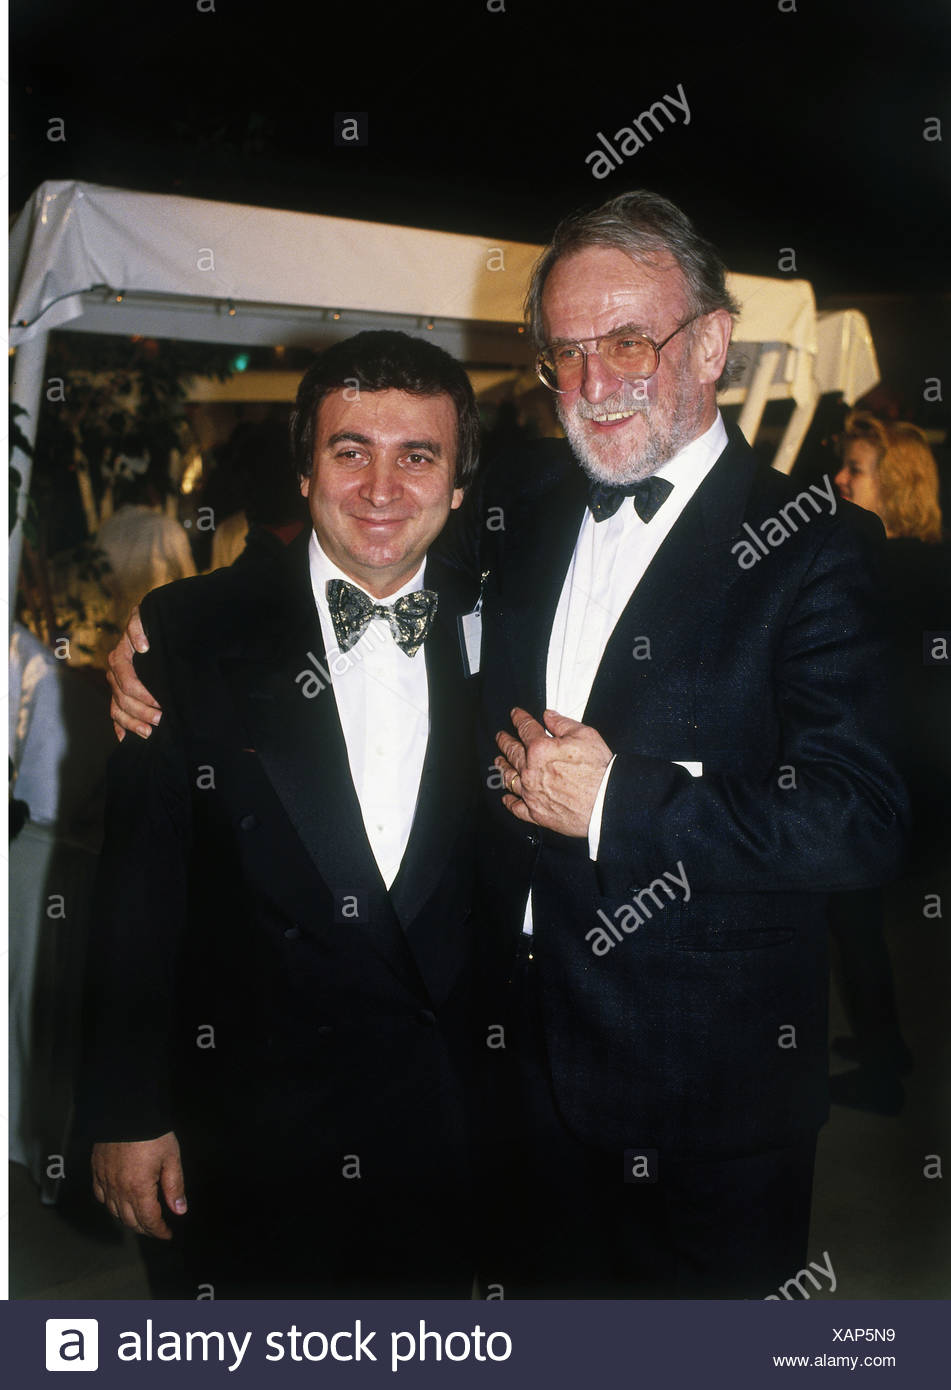 Avram, Marcel, * 1.3.1938, chief of the agency 'Mama Concerts', half length, with Fritz Rau, during the concert of the trio Sammy Davis Jr., Frank Sinatra and Liza Minnelli, 'Ultimate Event Tour', Olympics Hall, Munich, 2.5.1989, Additional-Rights-Clearances-NA - Stock Image